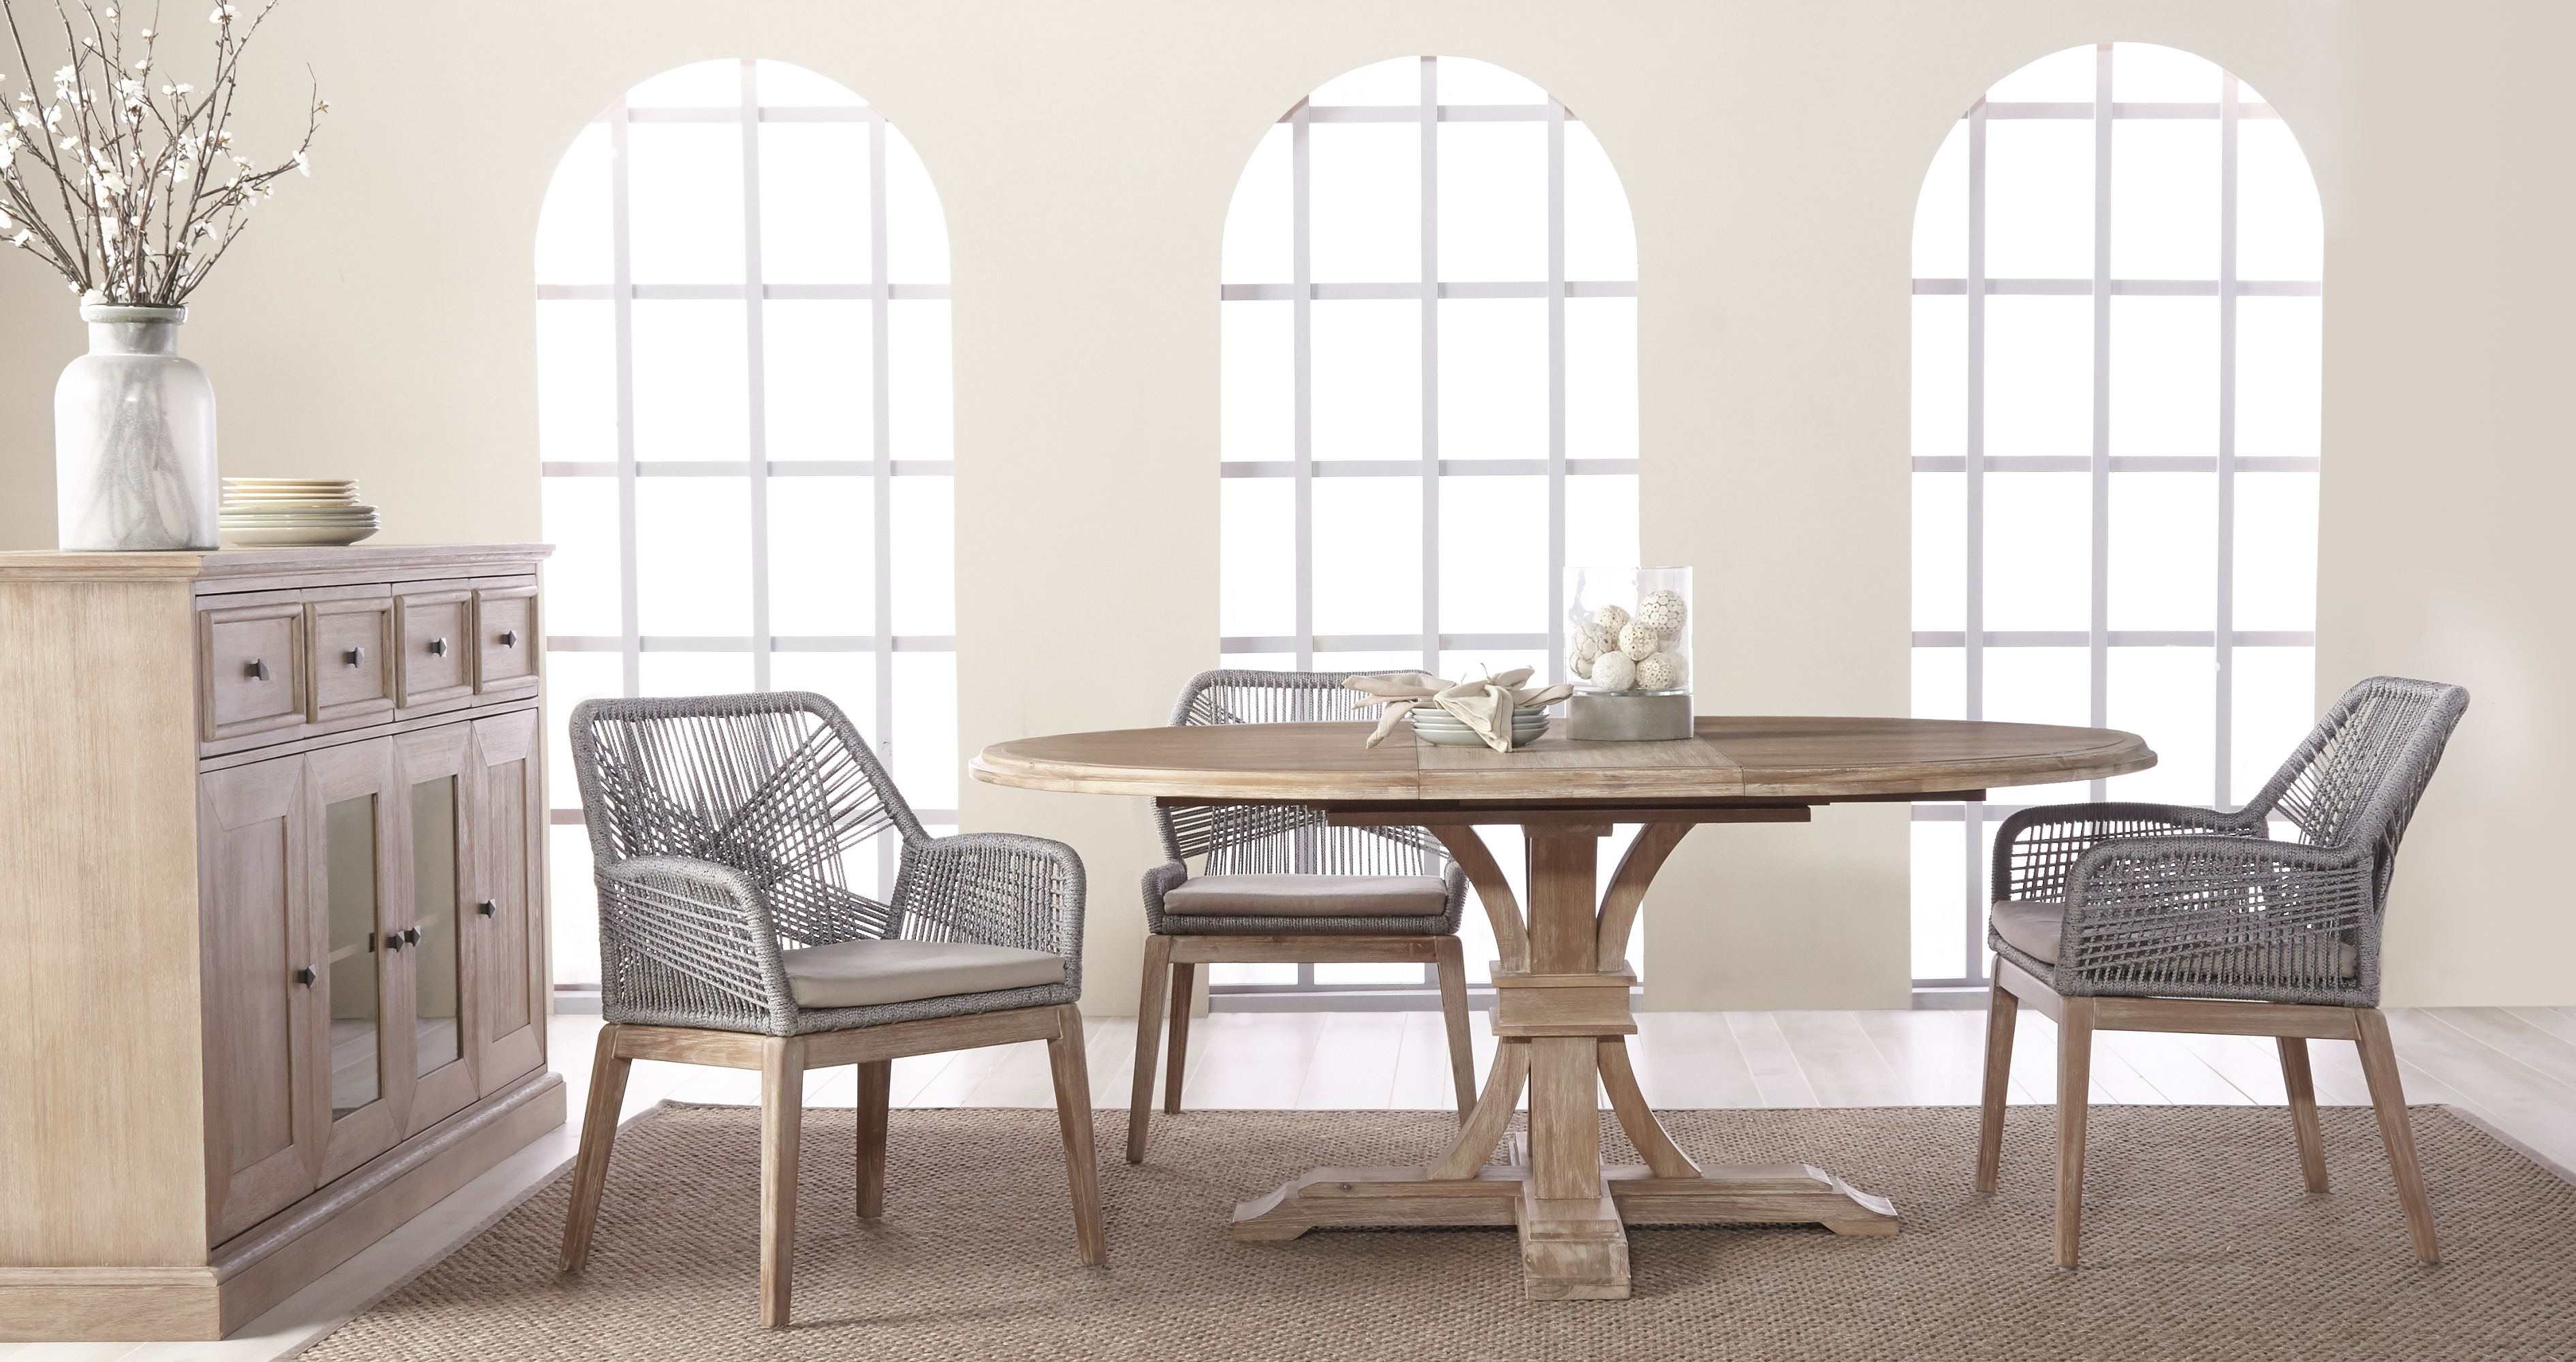 [%100+ [ Extension Dining Room Tables ] | Designs Vineyard Extension With Regard To Preferred Chapleau Extension Dining Tables|Chapleau Extension Dining Tables In Preferred 100+ [ Extension Dining Room Tables ] | Designs Vineyard Extension|2017 Chapleau Extension Dining Tables Throughout 100+ [ Extension Dining Room Tables ] | Designs Vineyard Extension|Preferred 100+ [ Extension Dining Room Tables ] | Designs Vineyard Extension Inside Chapleau Extension Dining Tables%] (View 2 of 25)